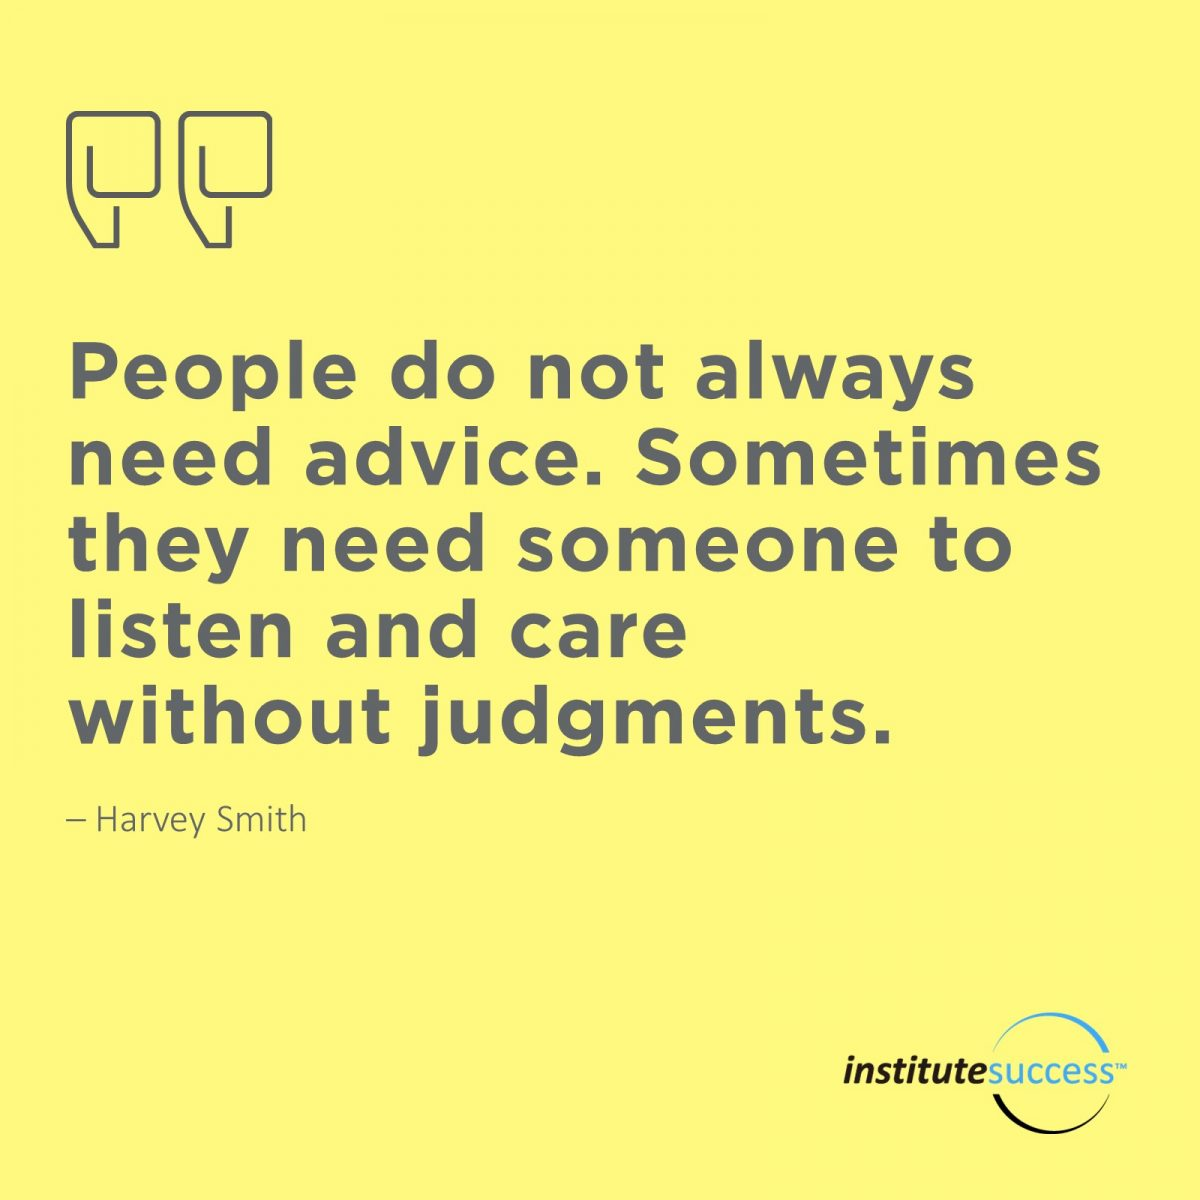 People do not always need advice. Sometimes they need someone to listen and care without judgements.Harvey Smith